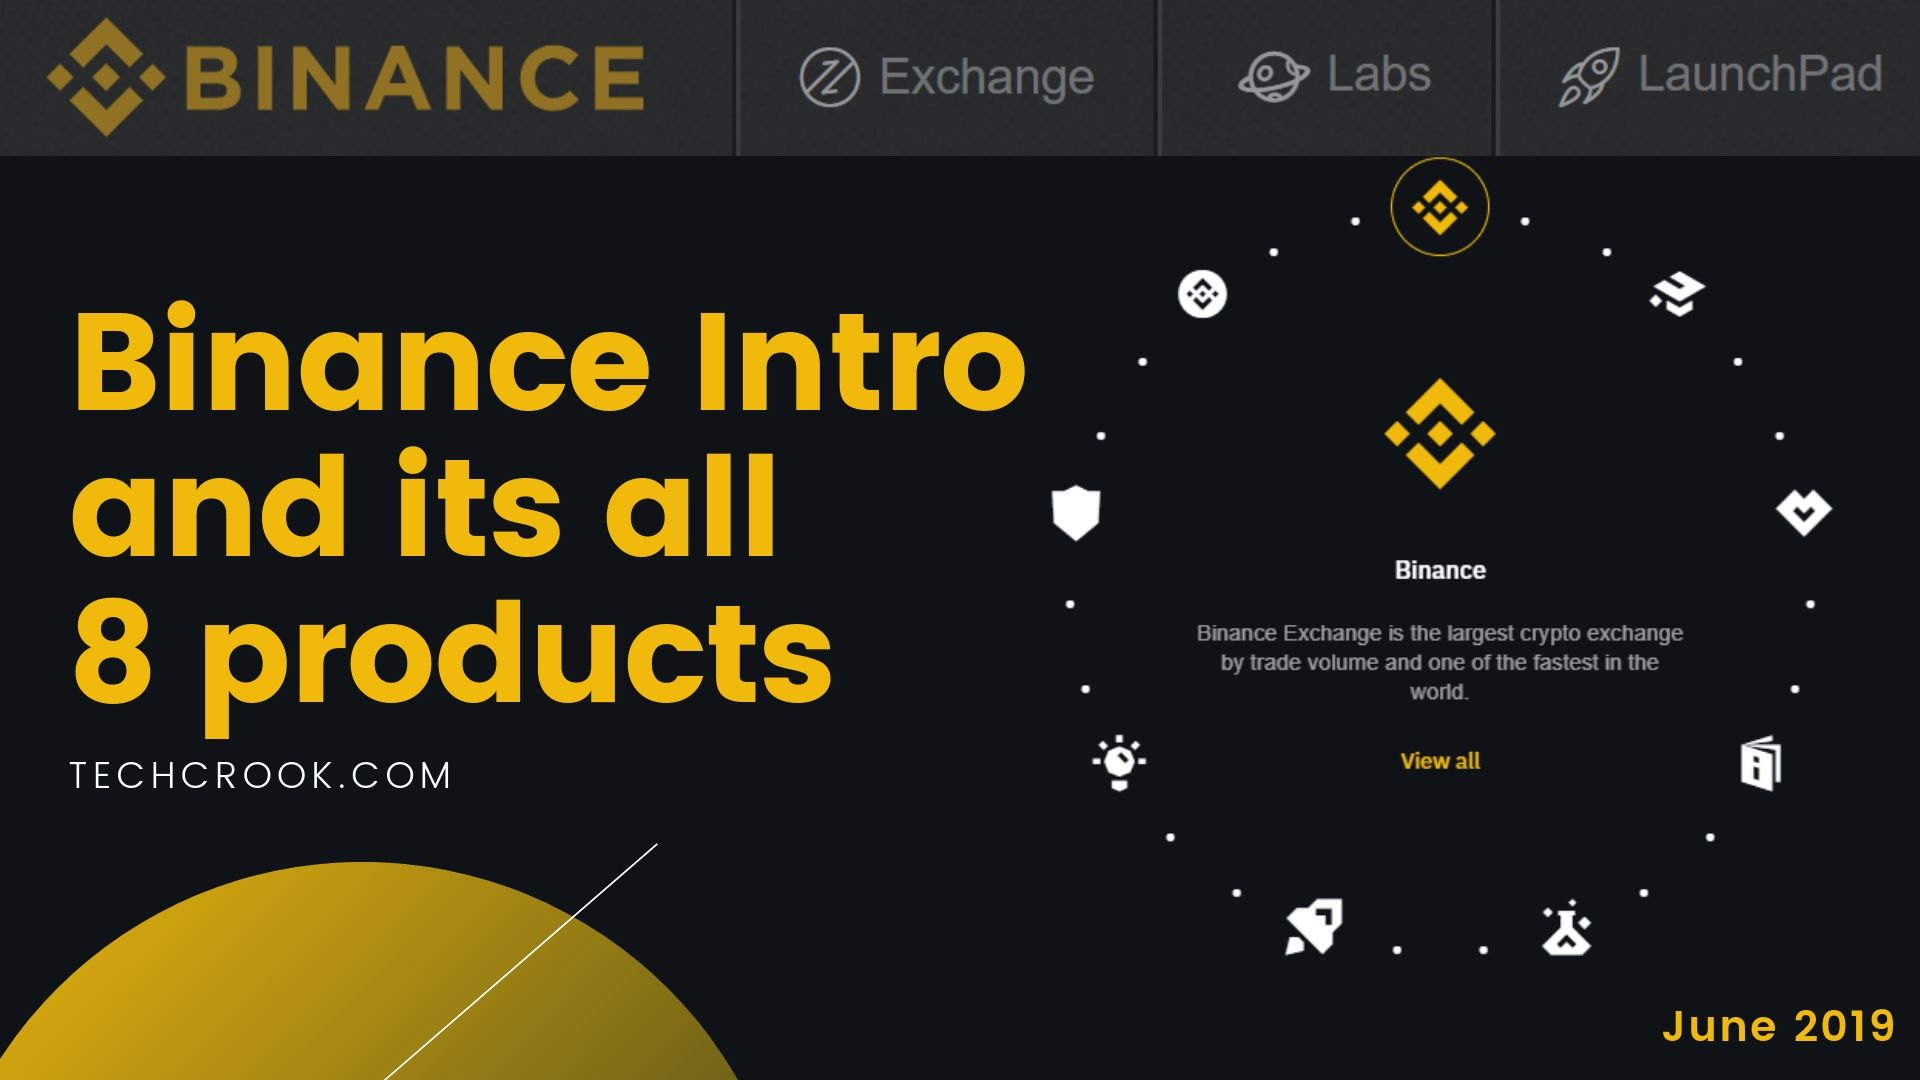 Cryptocurrency Exchange – Binance how it started and products offered